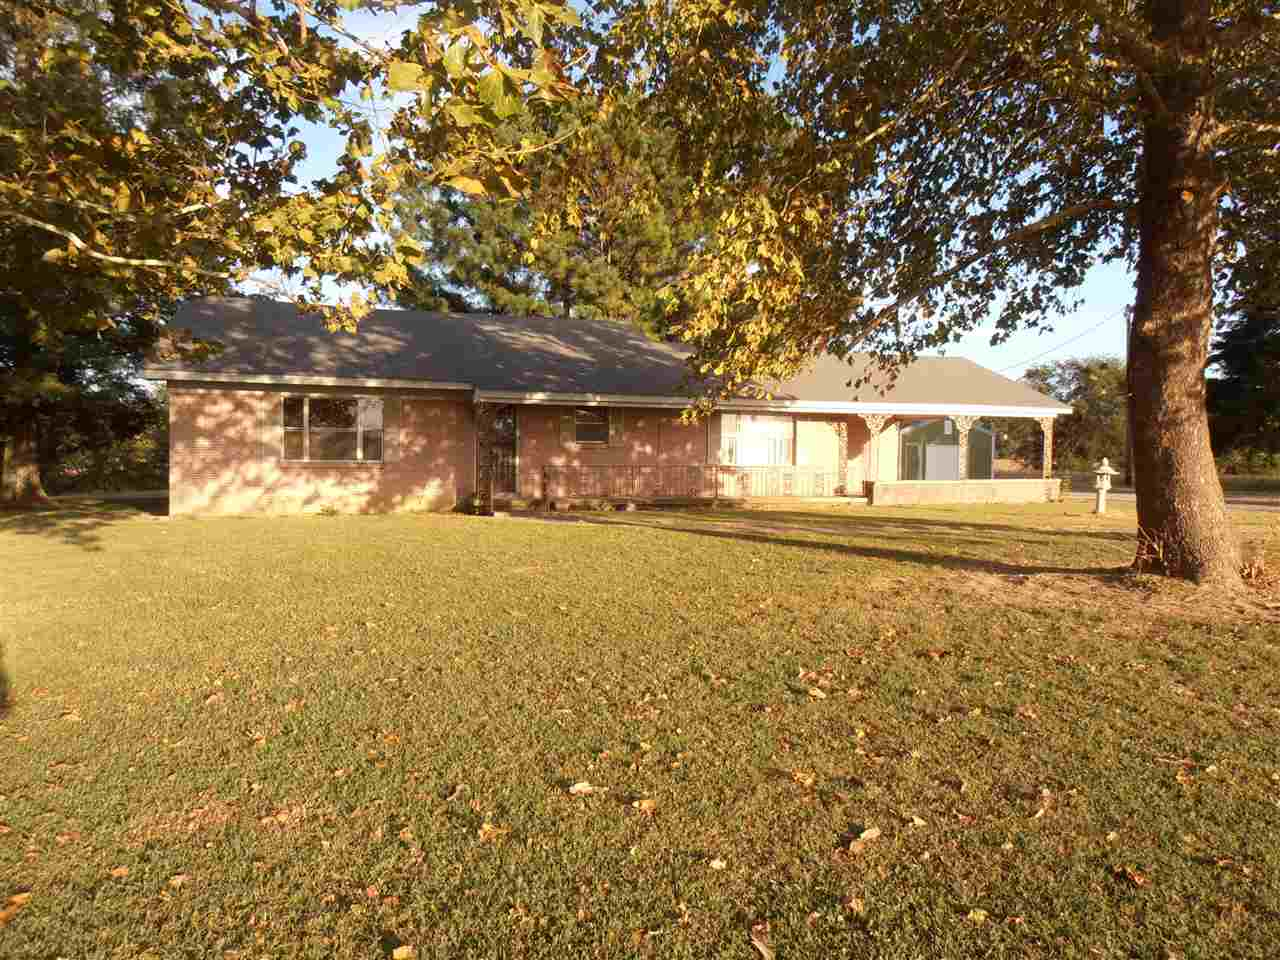 3770 Tatumville Road,Newbern,Tennessee 38024,3 Bedrooms Bedrooms,2 BathroomsBathrooms,Residential,3770 Tatumville Road,179825